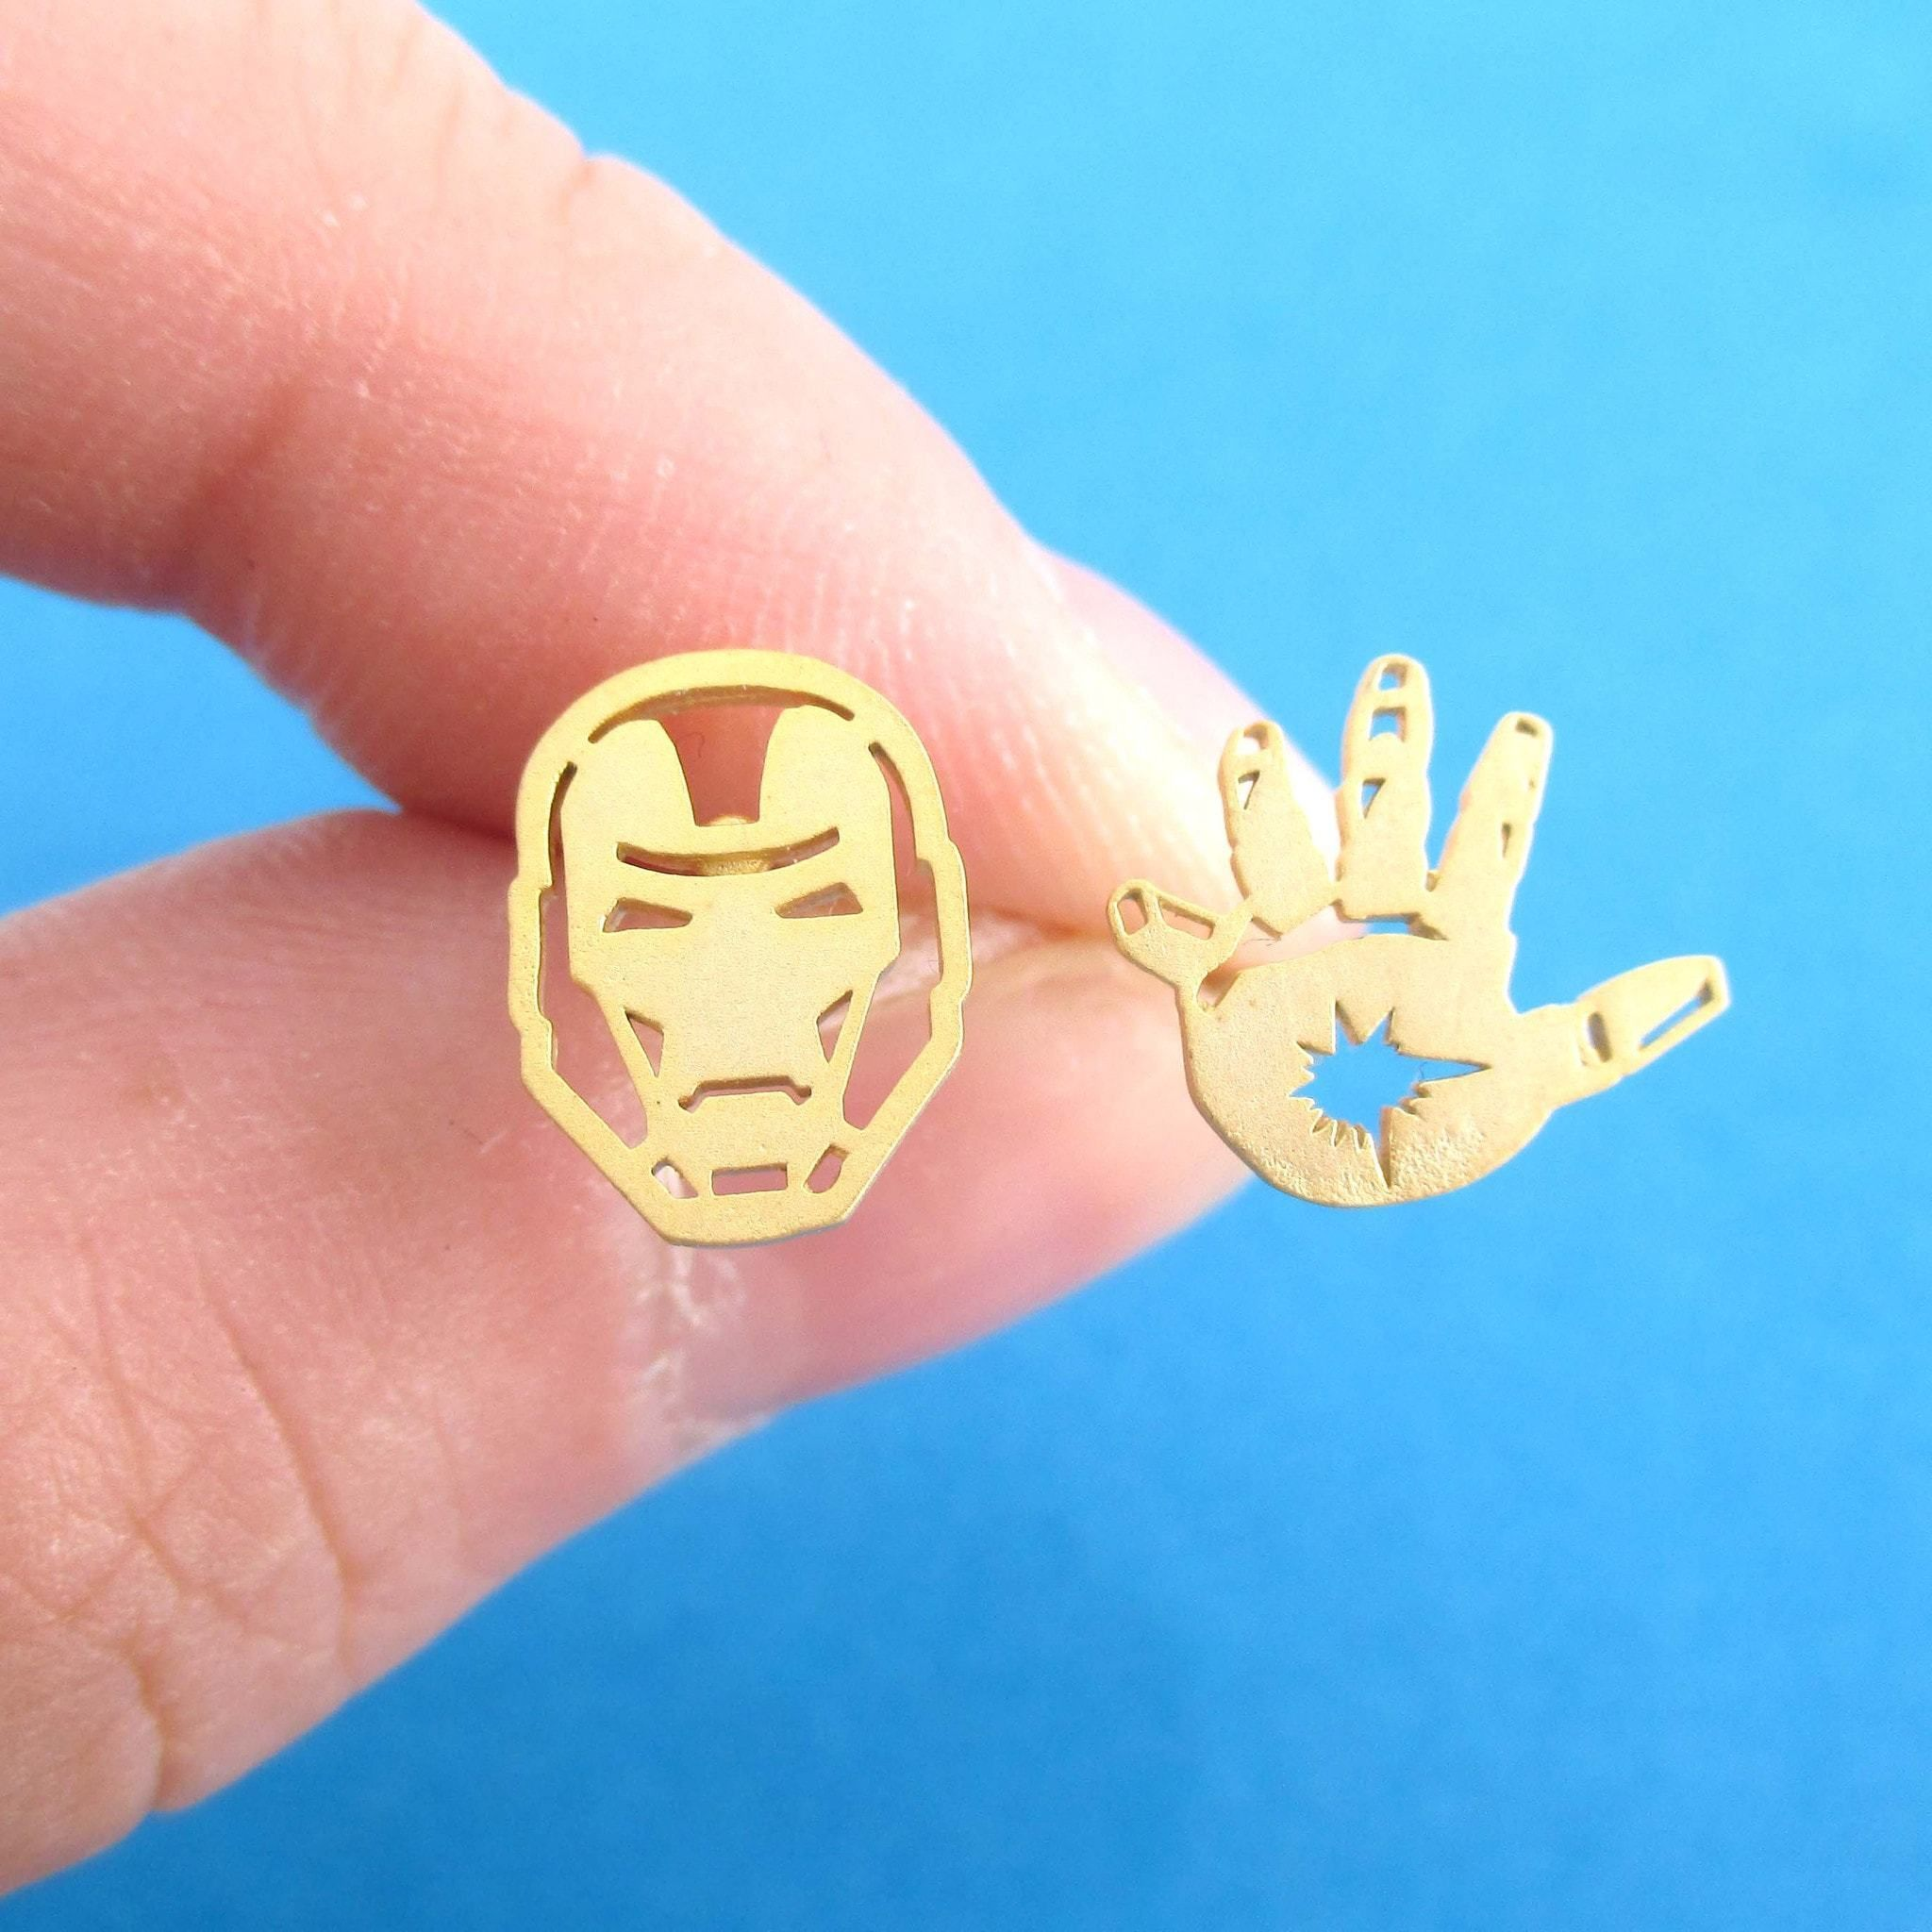 98f91ddf5 Iron Man Mask and Glove Shaped Stud Earrings in Gold | Super Hero Jewelry